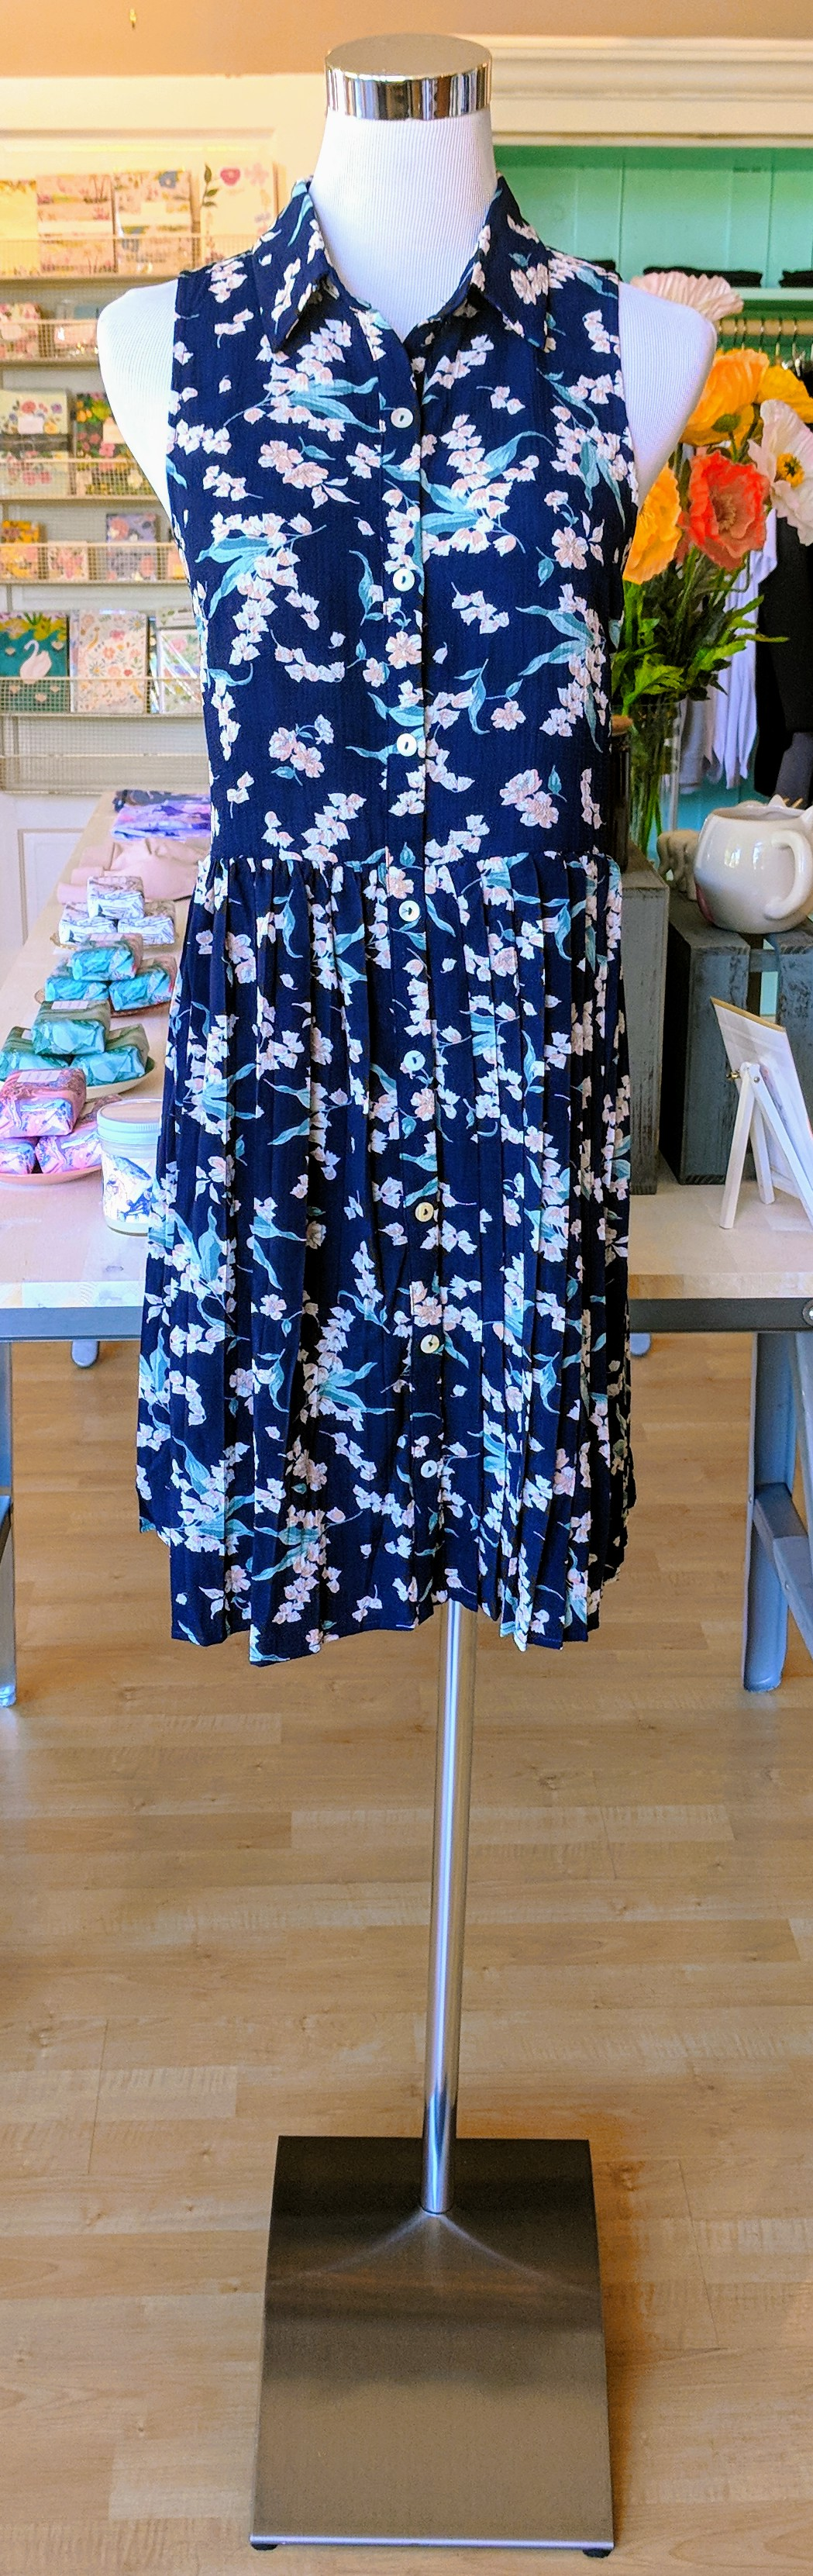 Navy floral dress with pleated bottom.